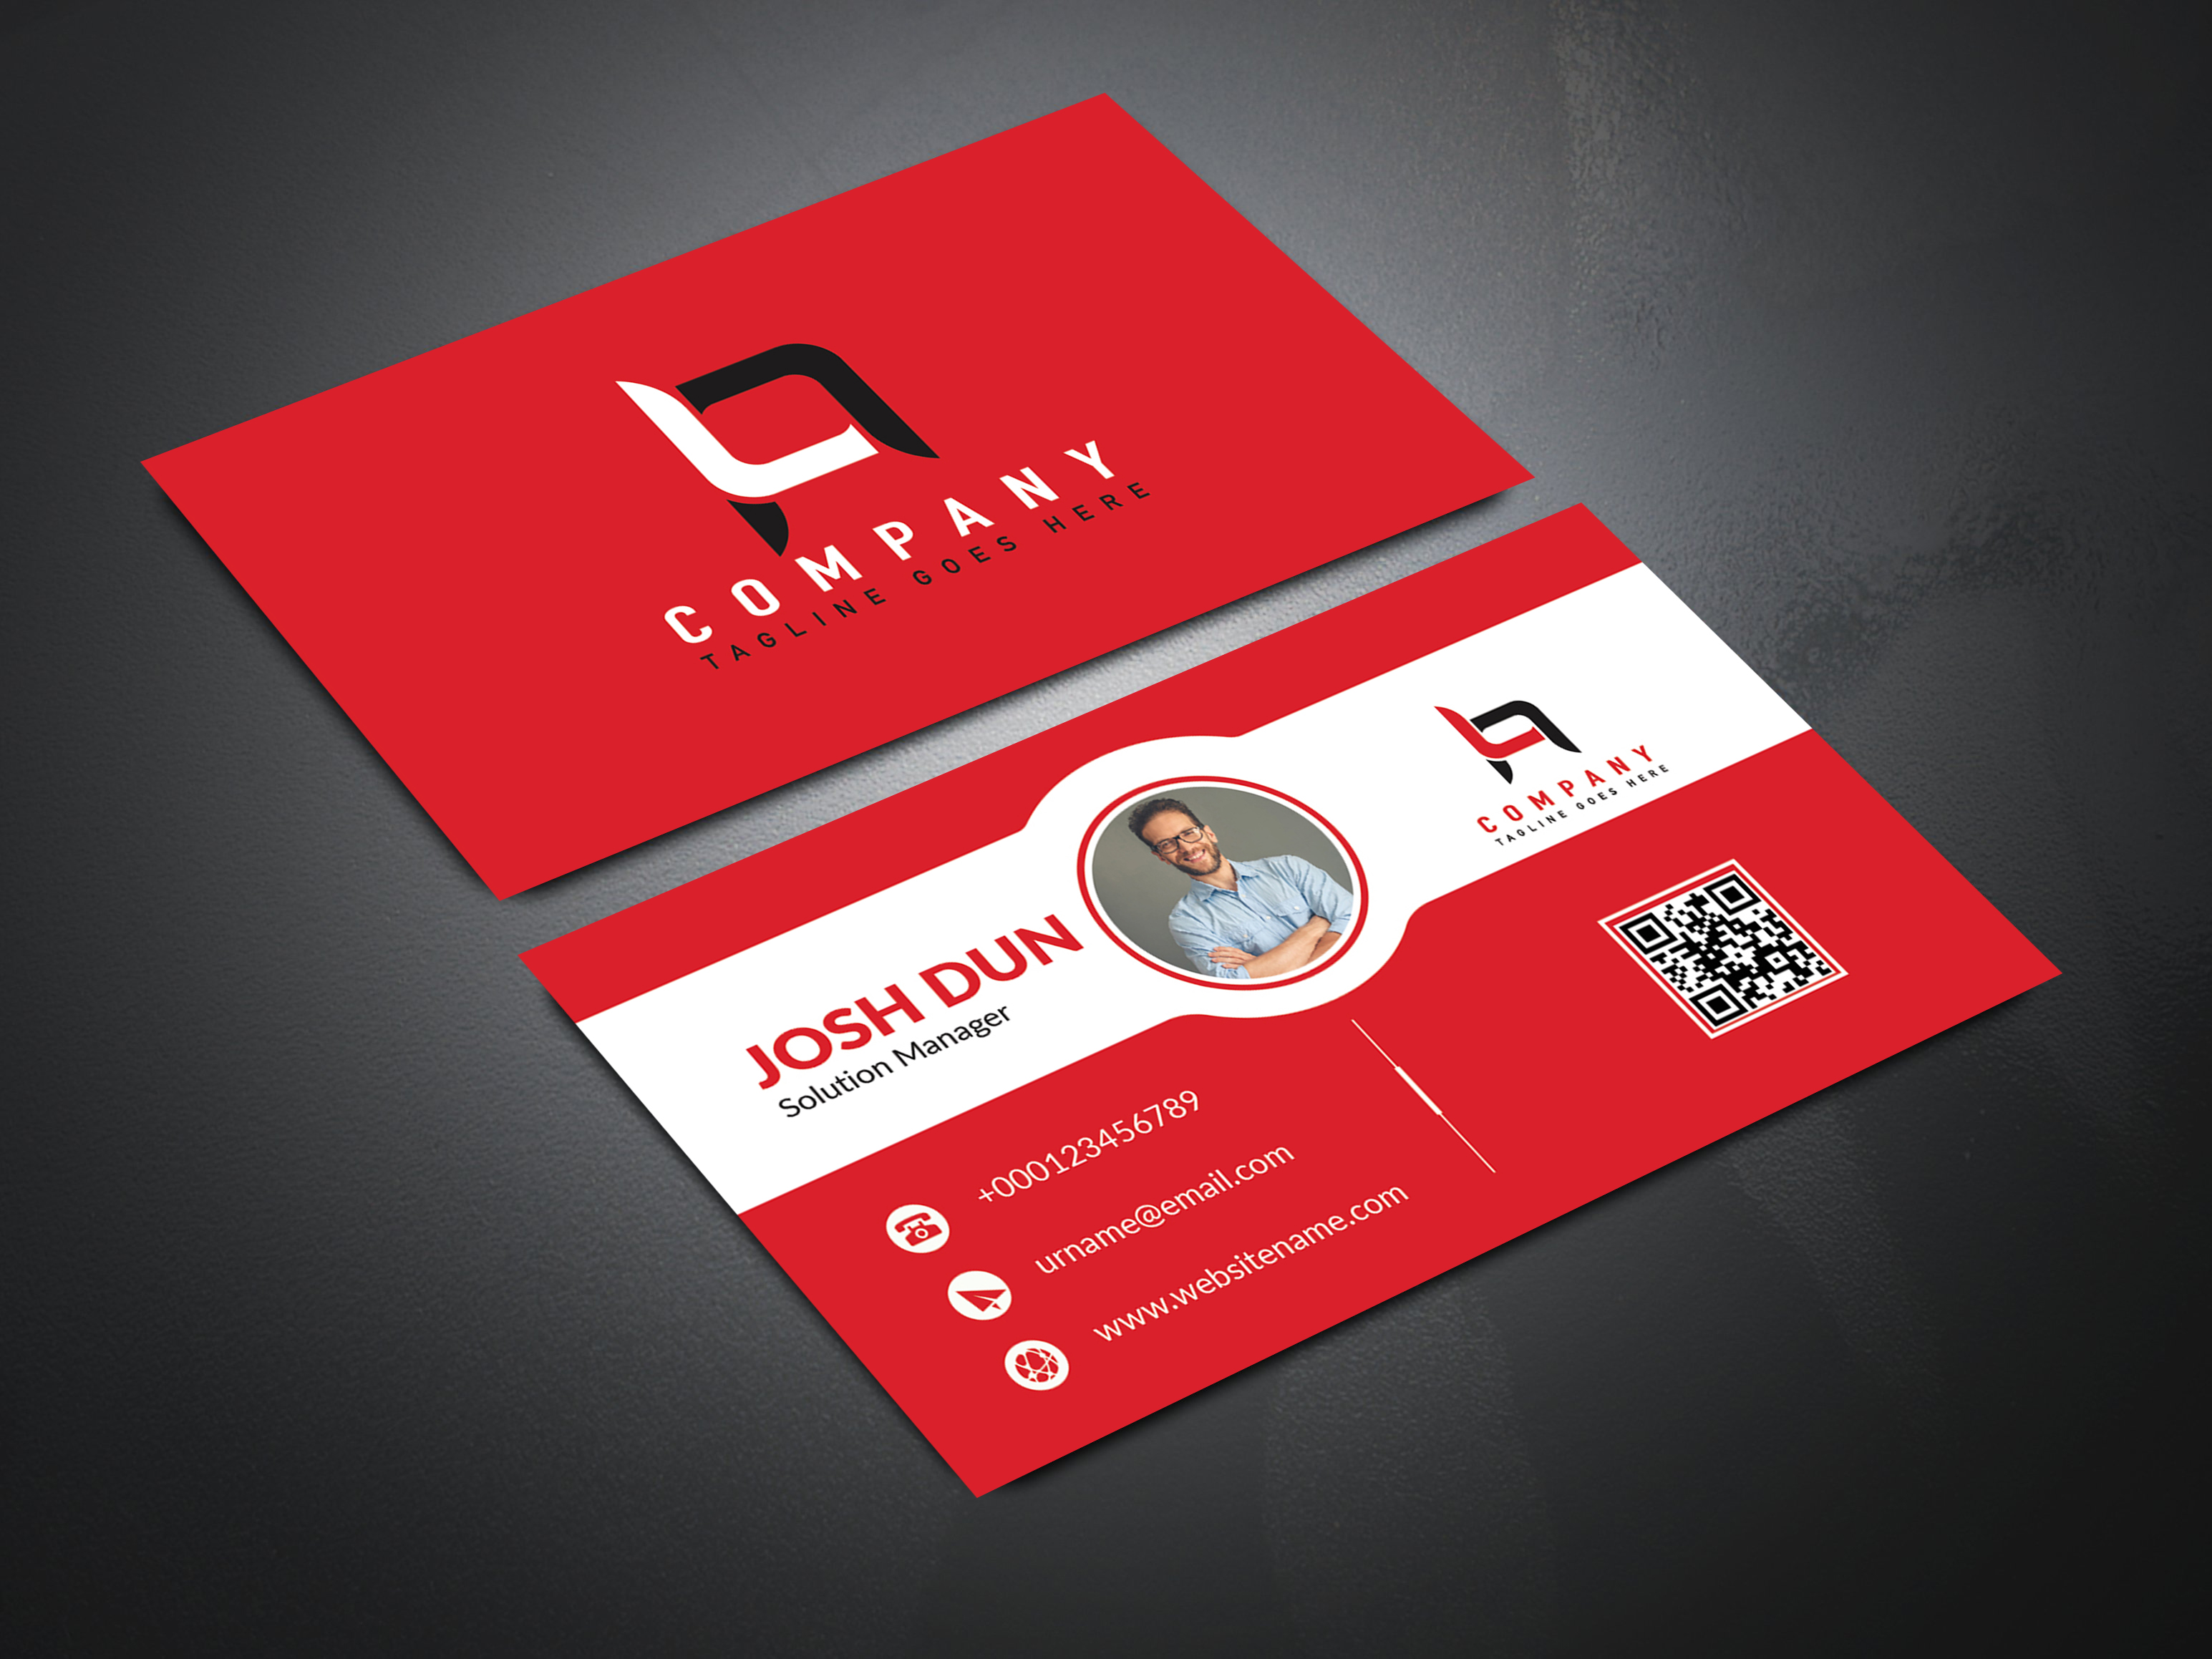 I Will Design Best Premium Business Card in 12 Hours with 2 concept